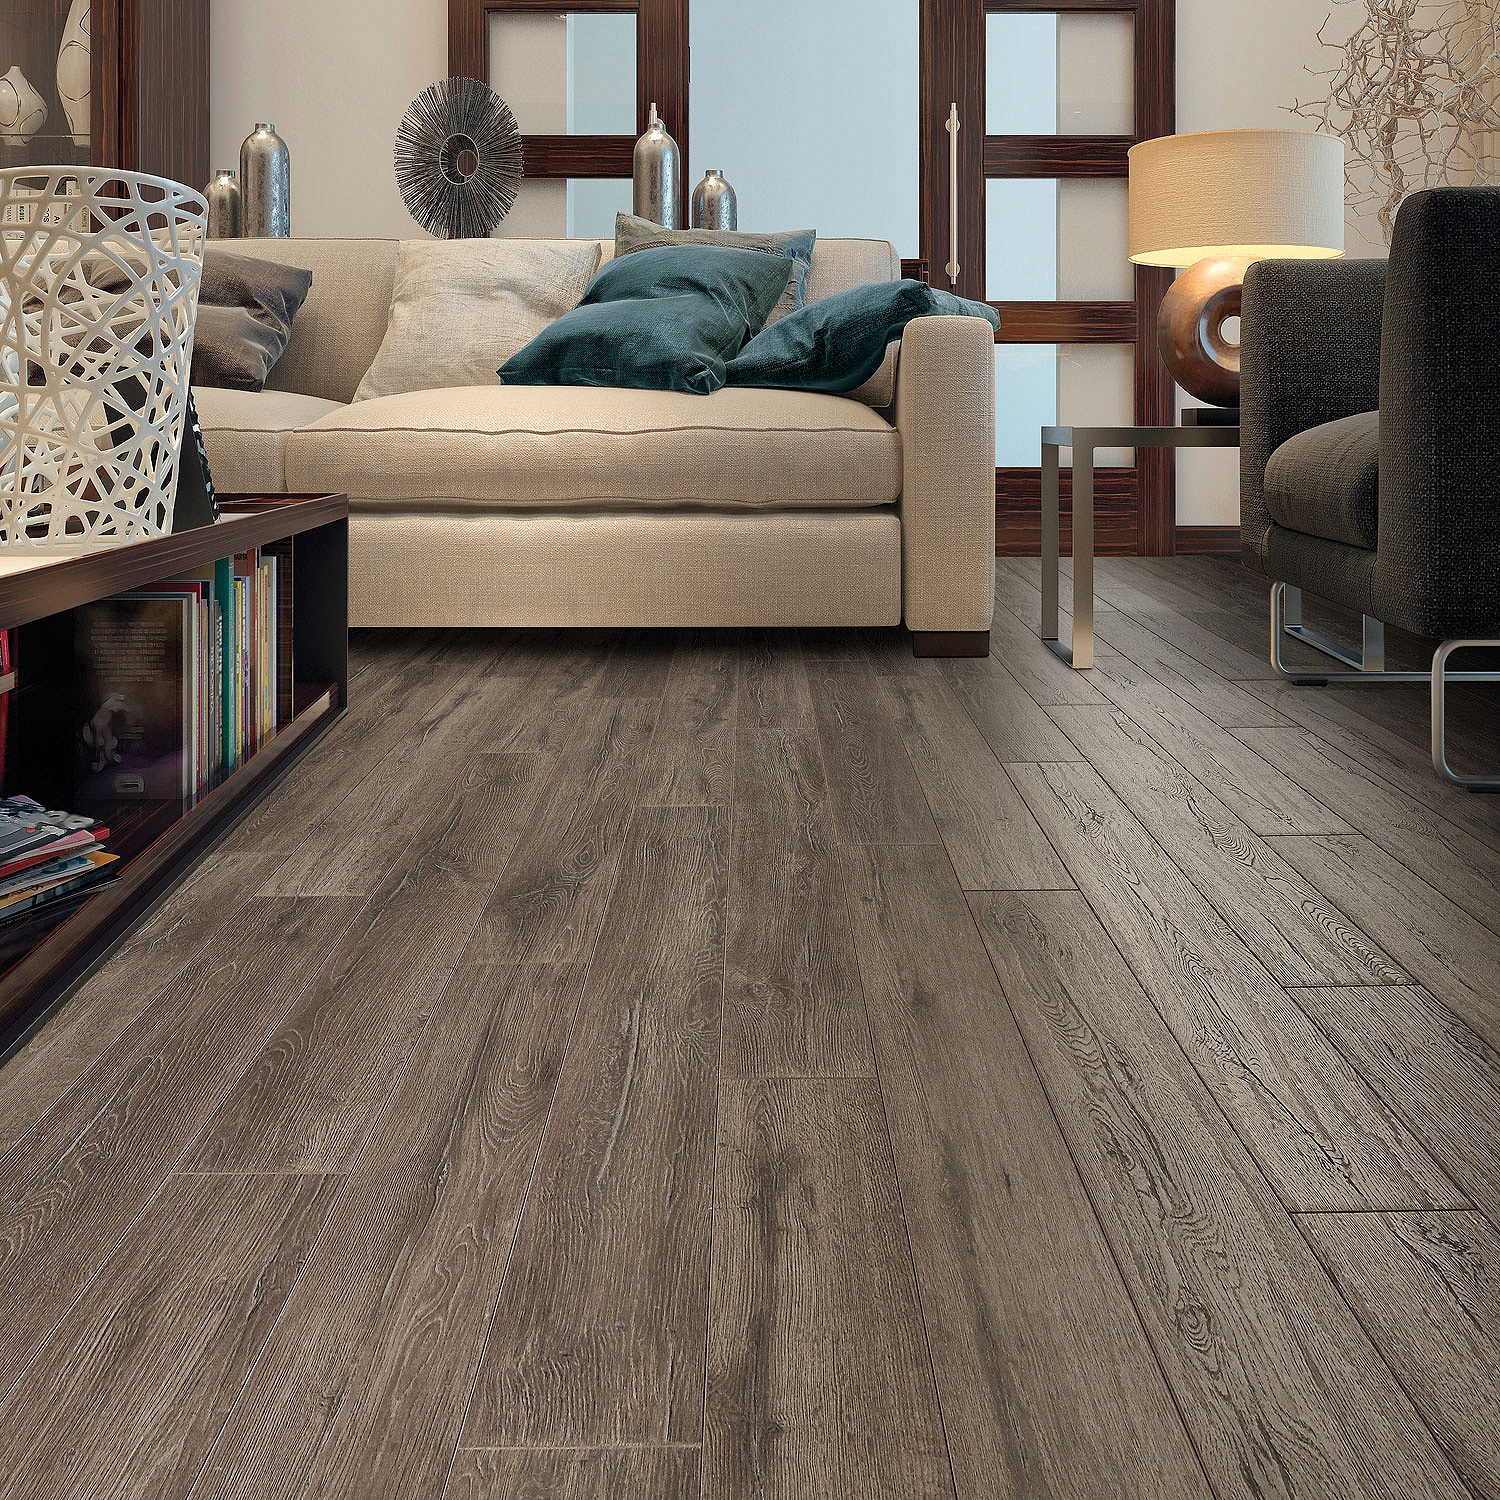 Select Surfaces Laminate Flooring, Silver Oak (6 Planks, 12.50 sq. ft.)